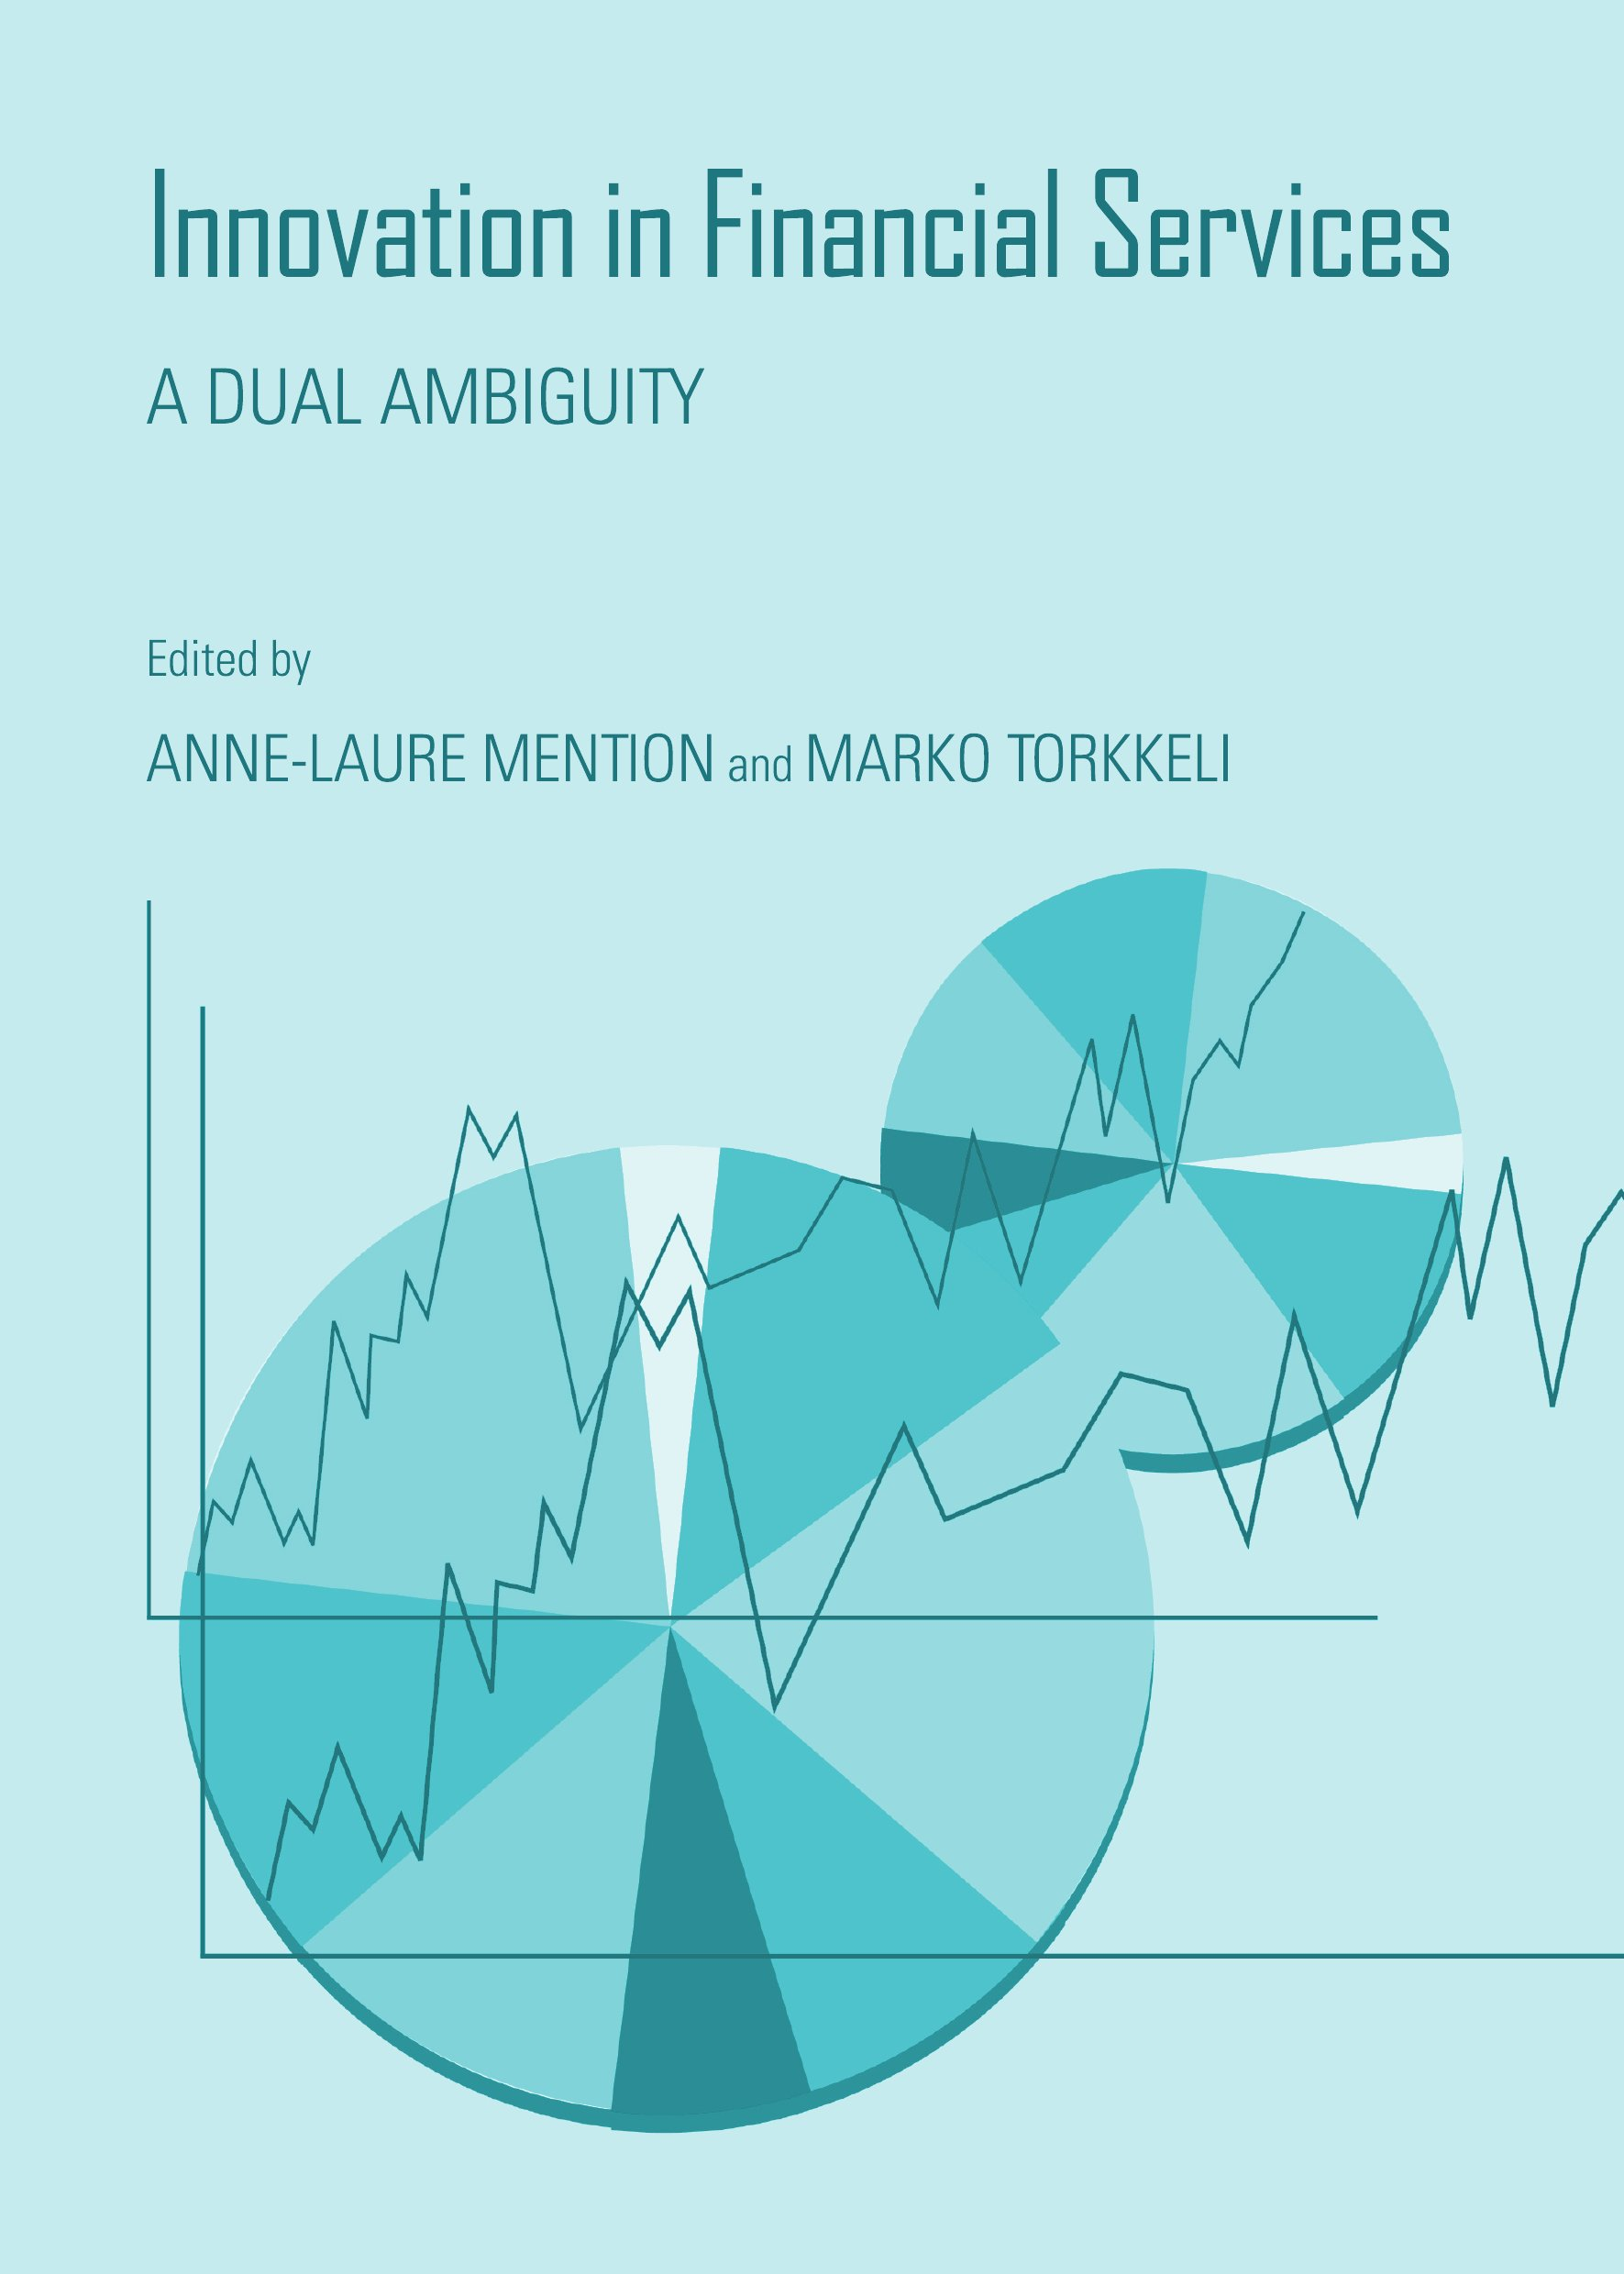 Innovation in Financial Services: A Dual Ambiguity